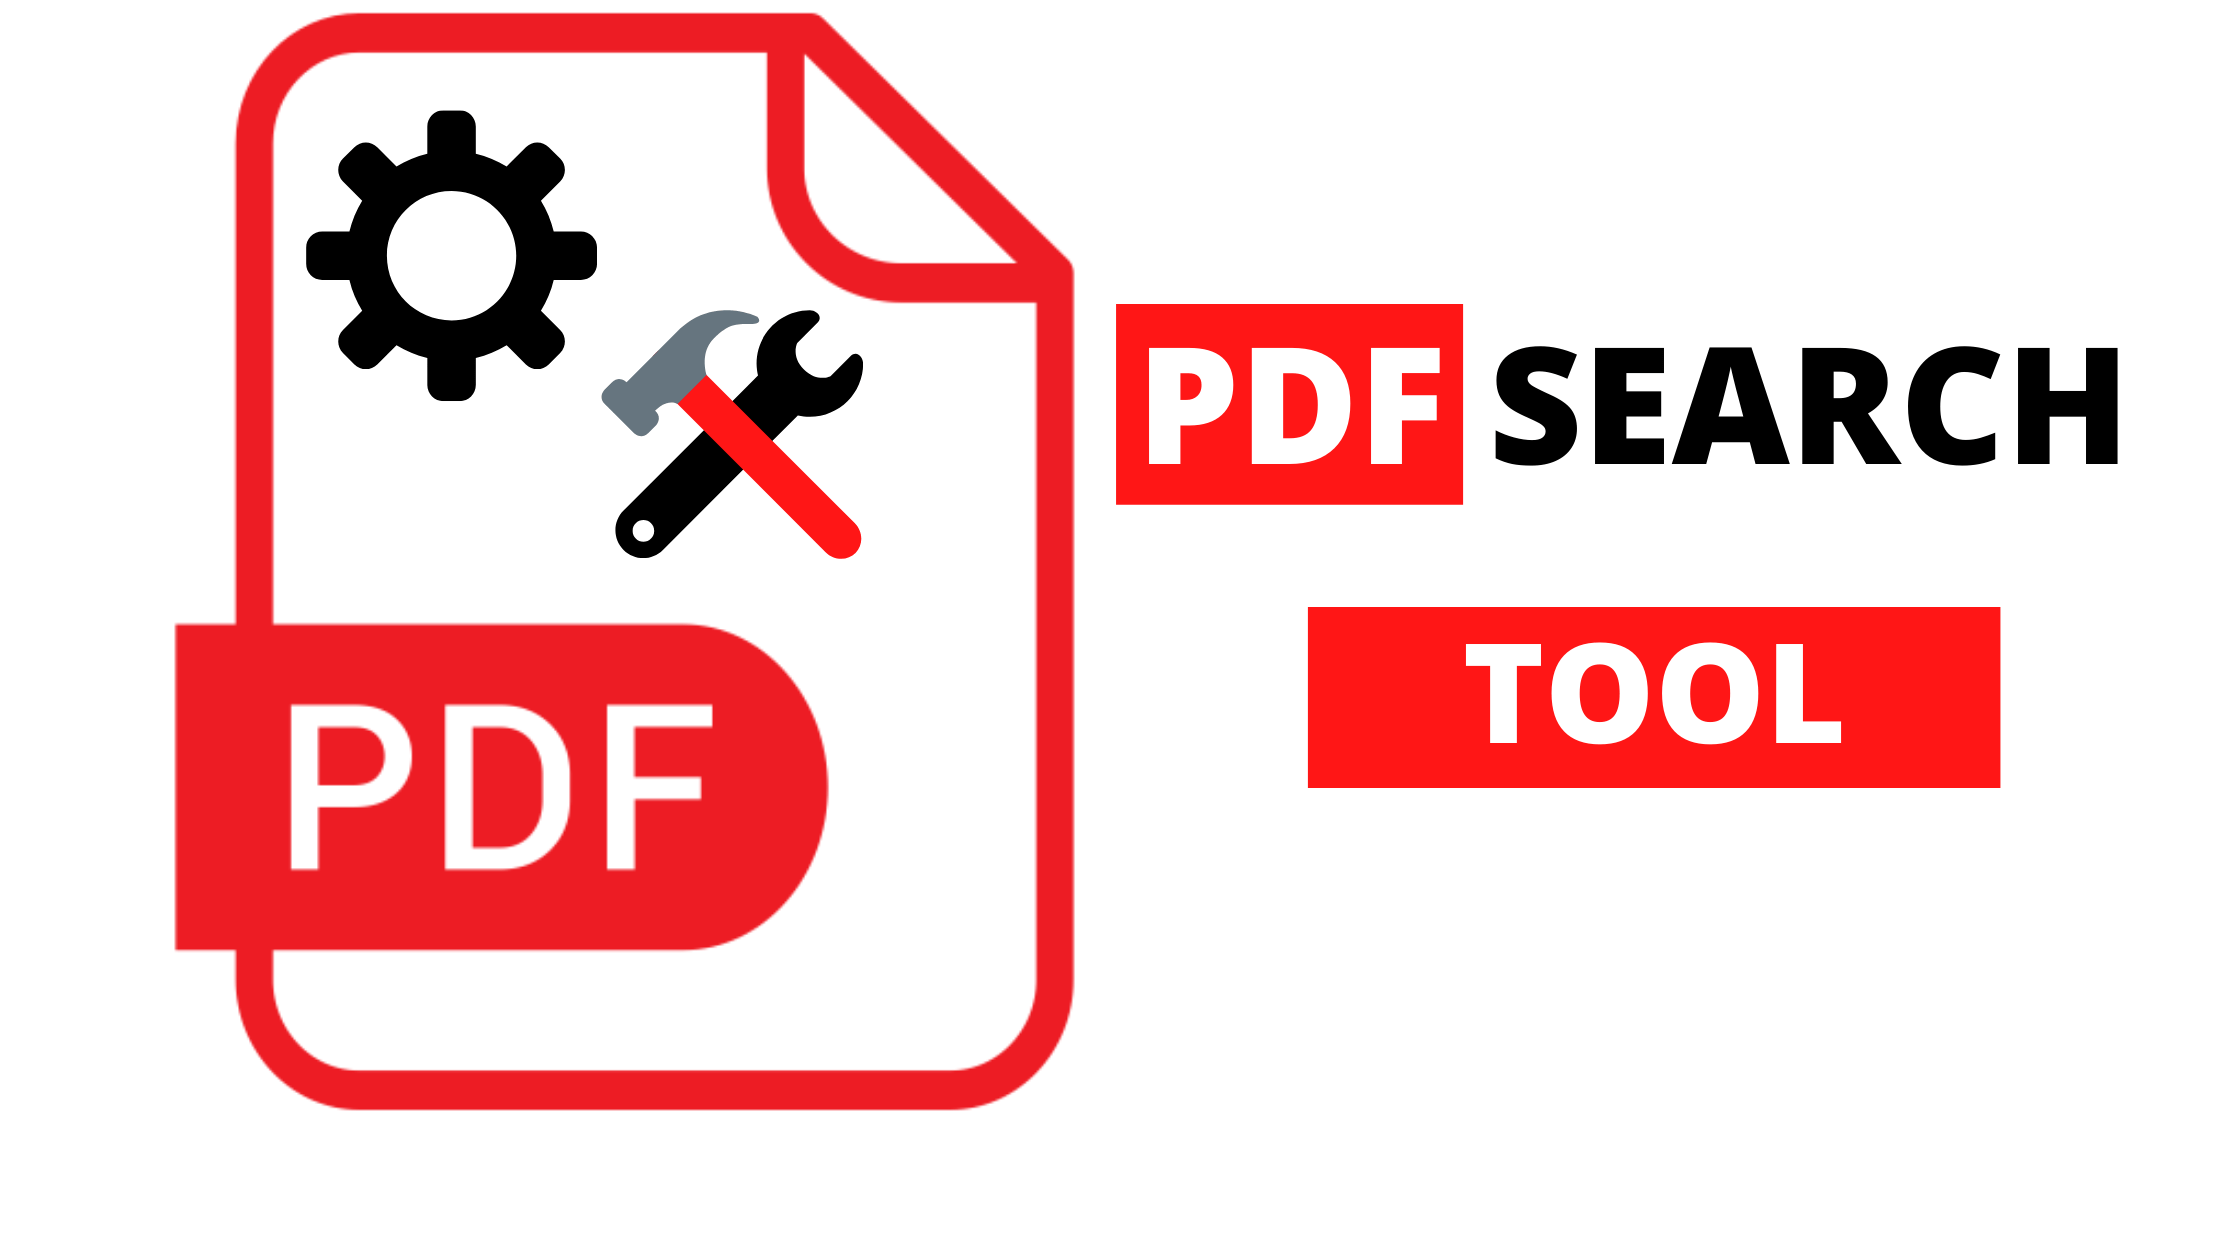 PDF SEARCH ENGINE - CREATE YOUR OWN